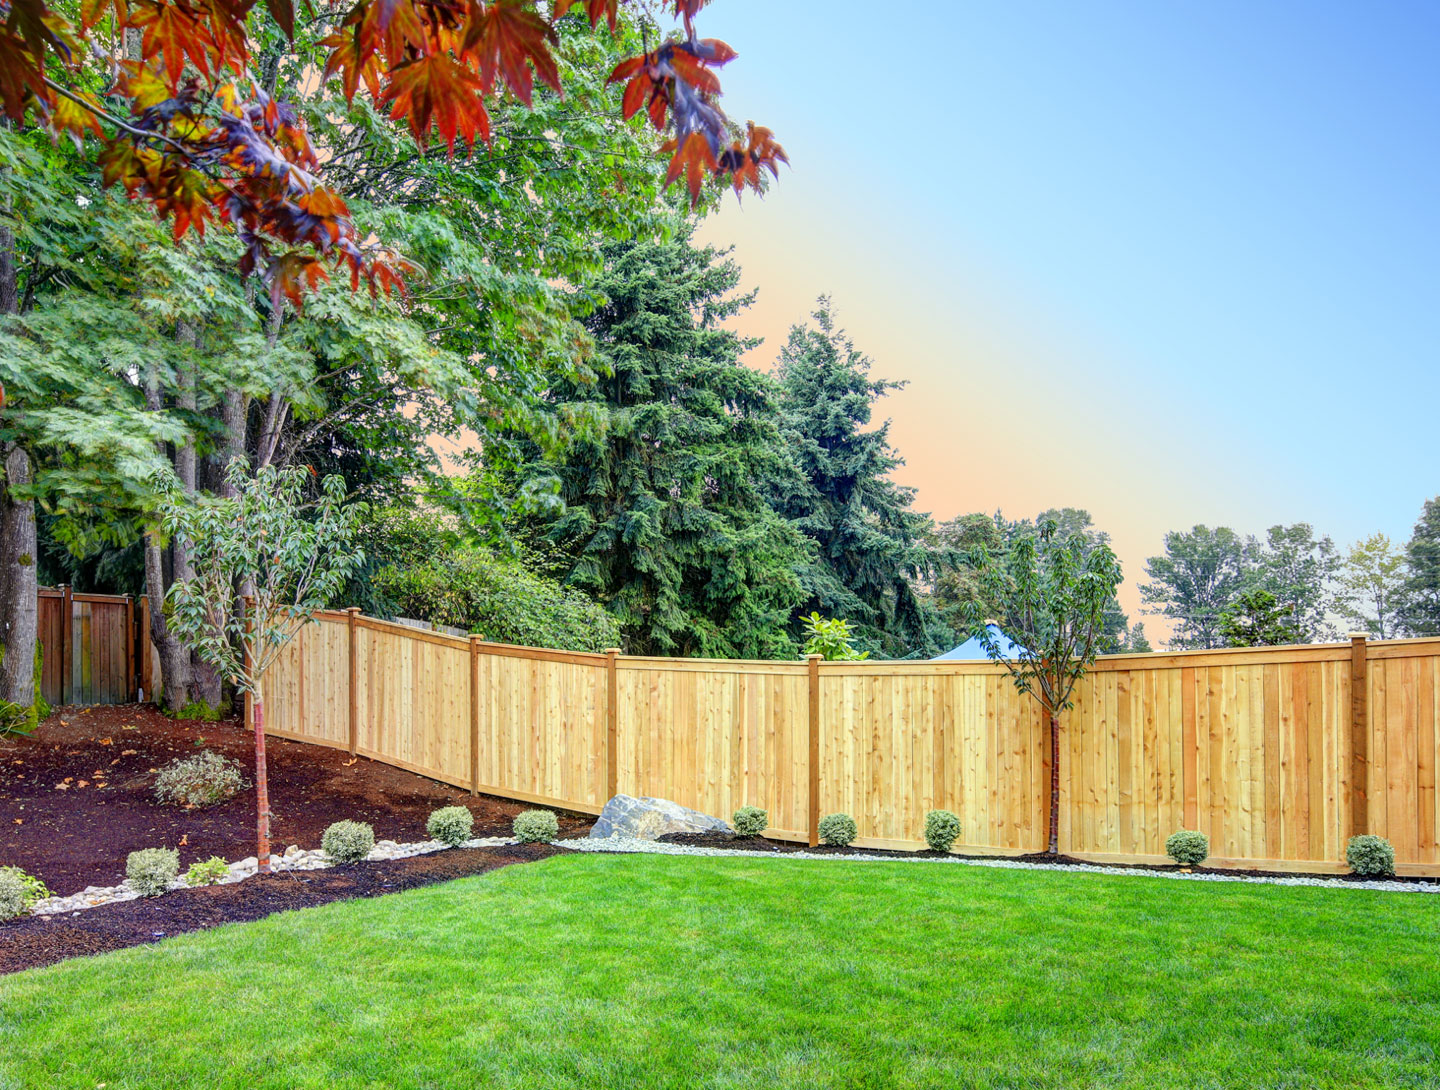 Ergeon – What is a Good Neighbor Fence?